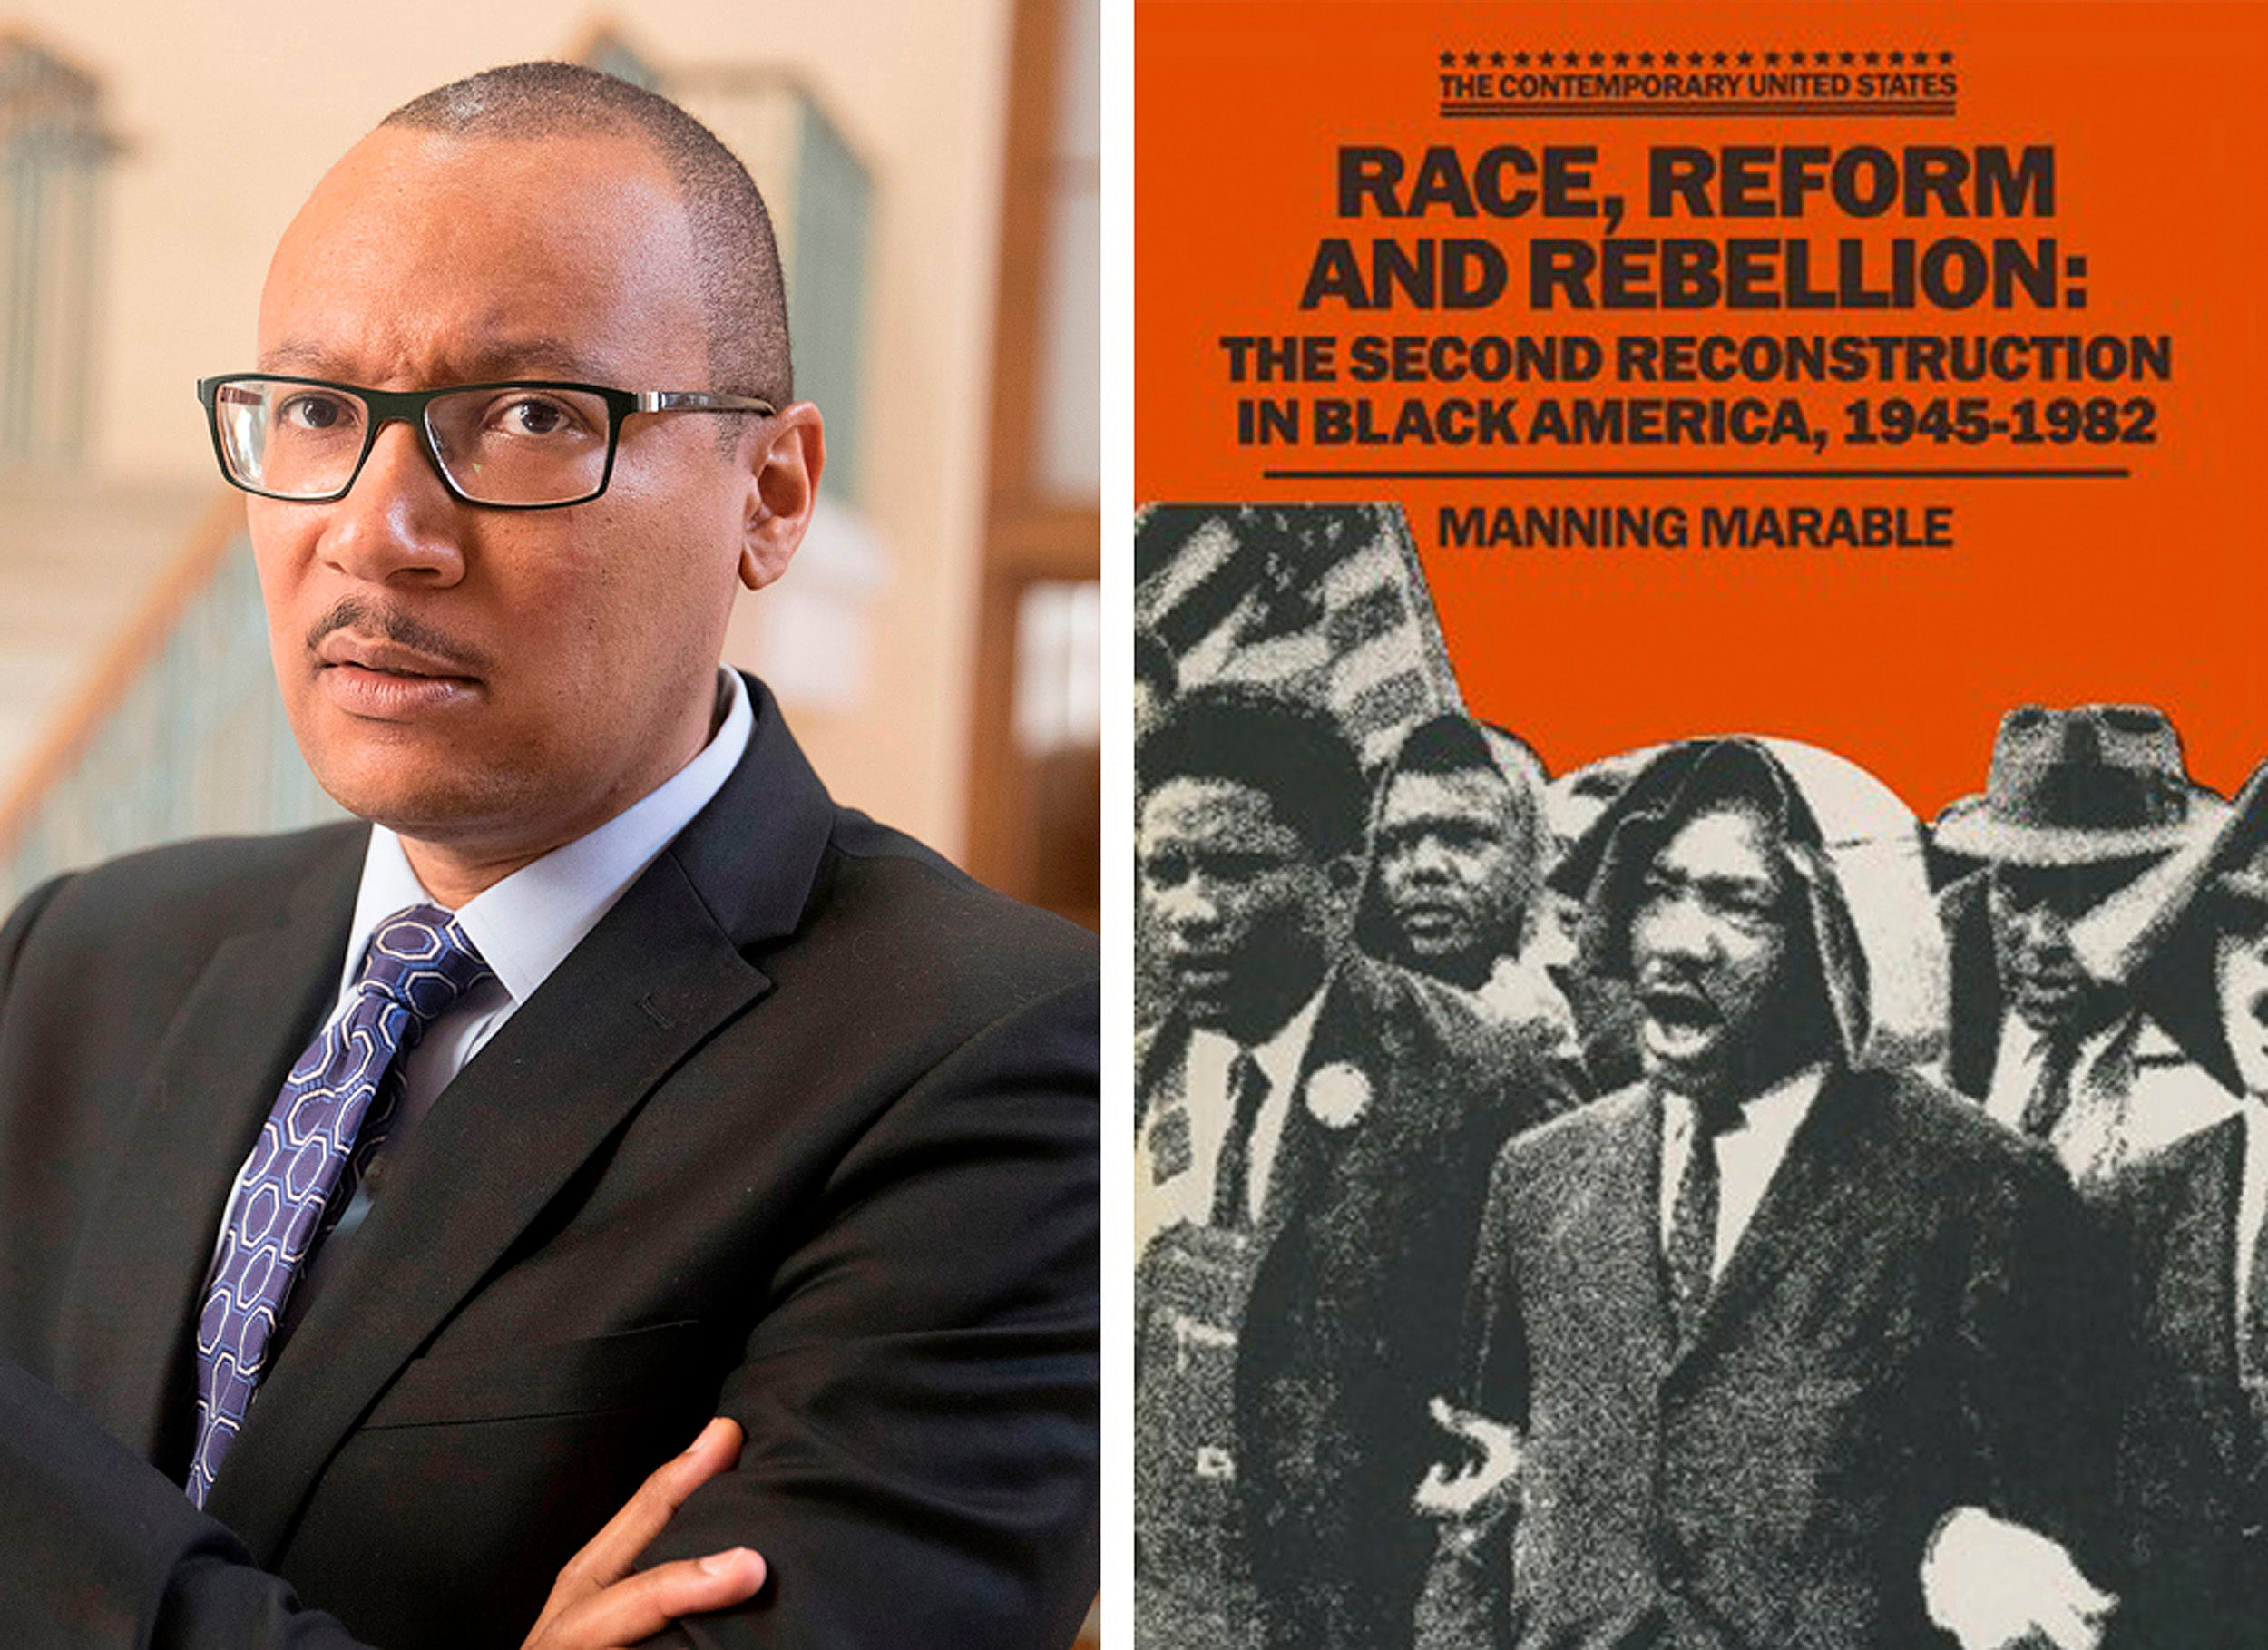 Tommie Shelby and Race, Reform, and Rebellion book cover.